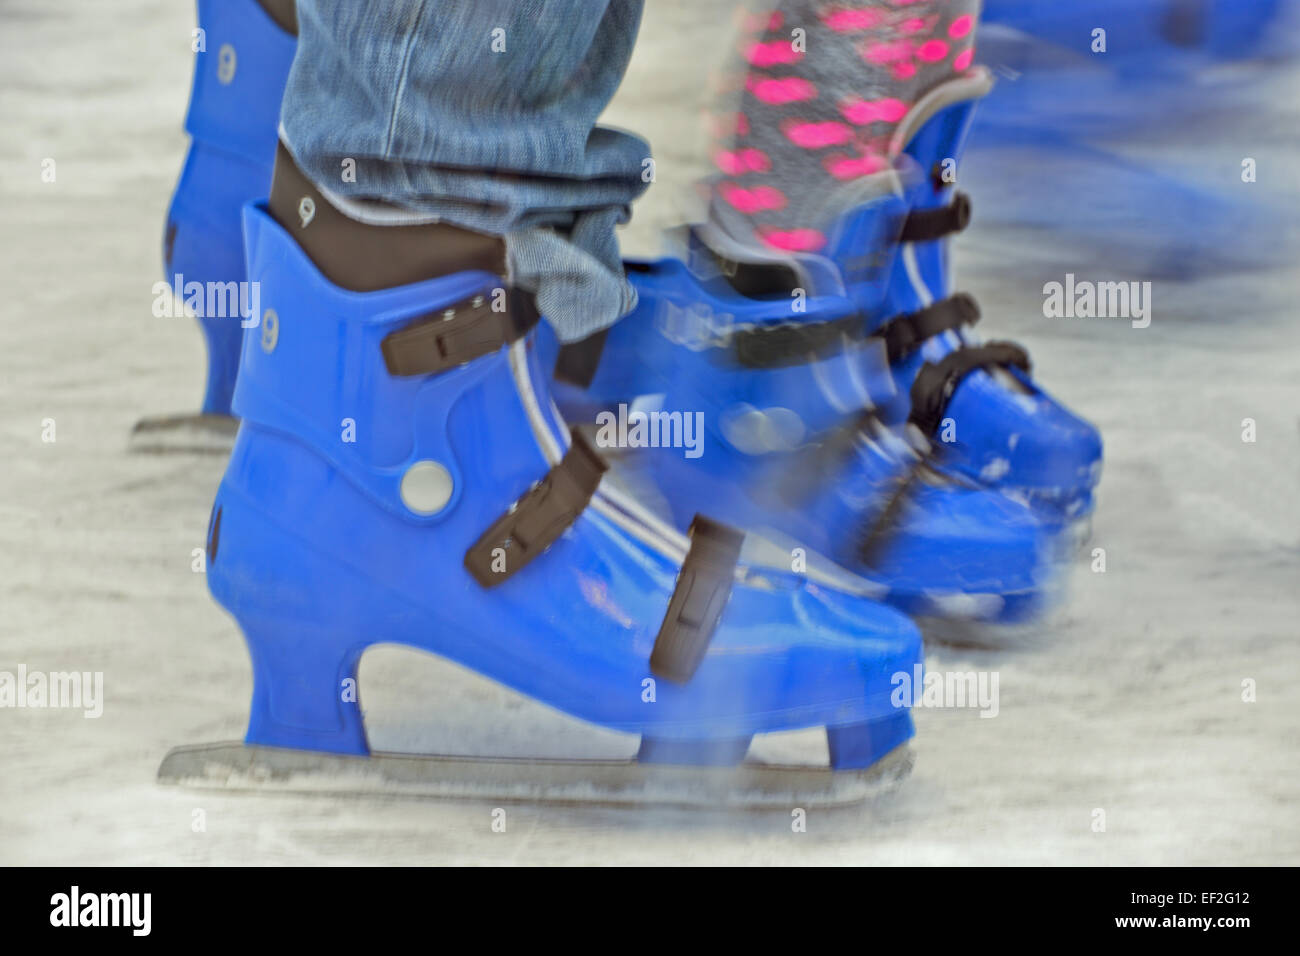 Blurred lower body shoot of Mother and child ice skaters on out door ice rink - Stock Image